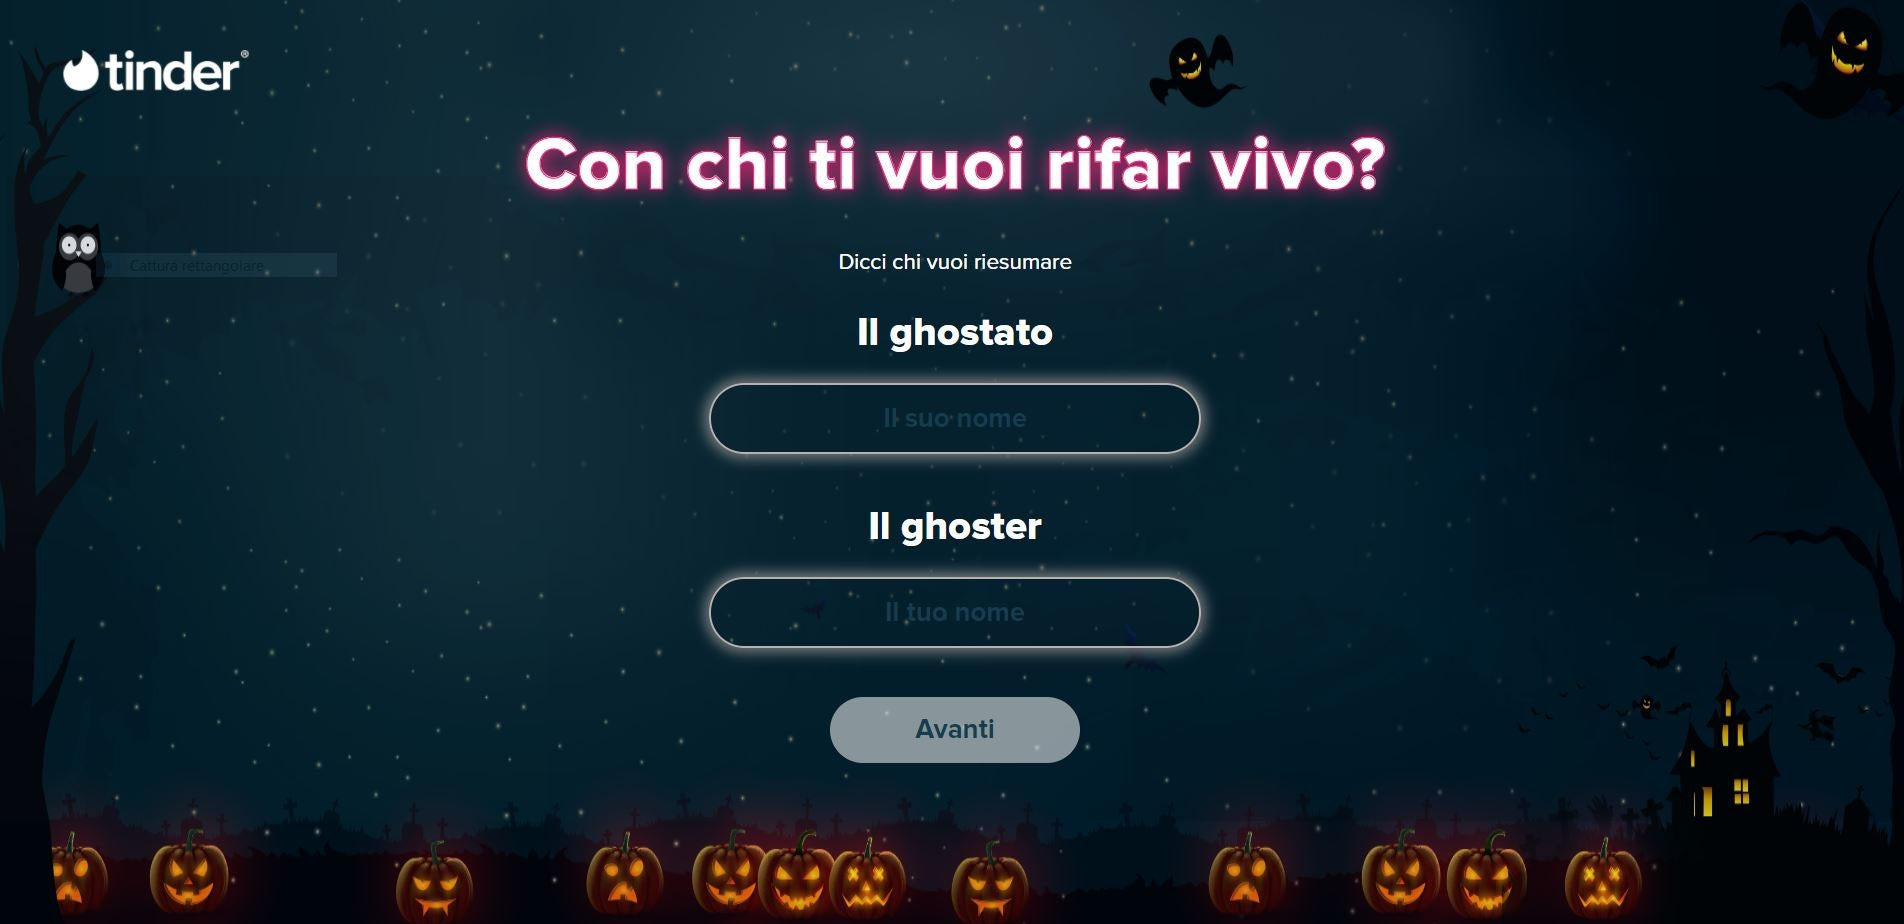 schermata sito tinder itsyourboo per ghosting ad halloween